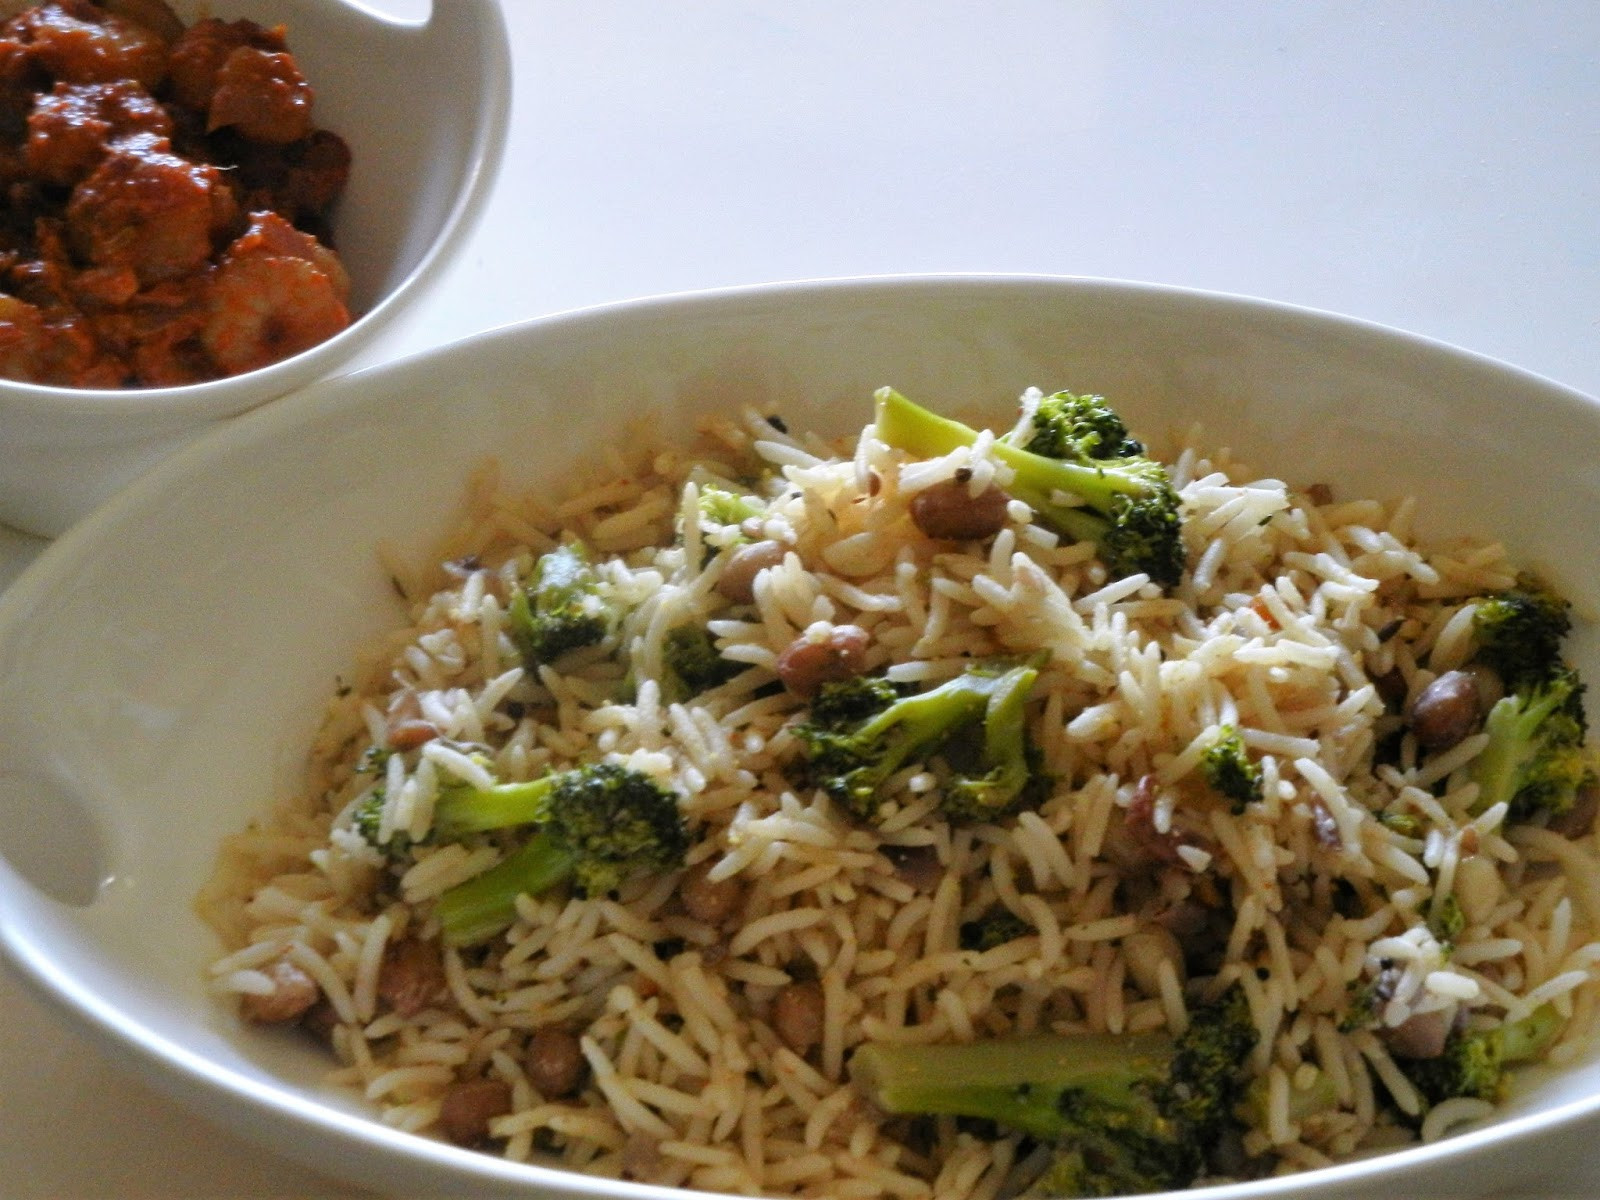 Diabetic Recipes Blog  Gita s Kitchen A blog for Indian diabetic recipes and